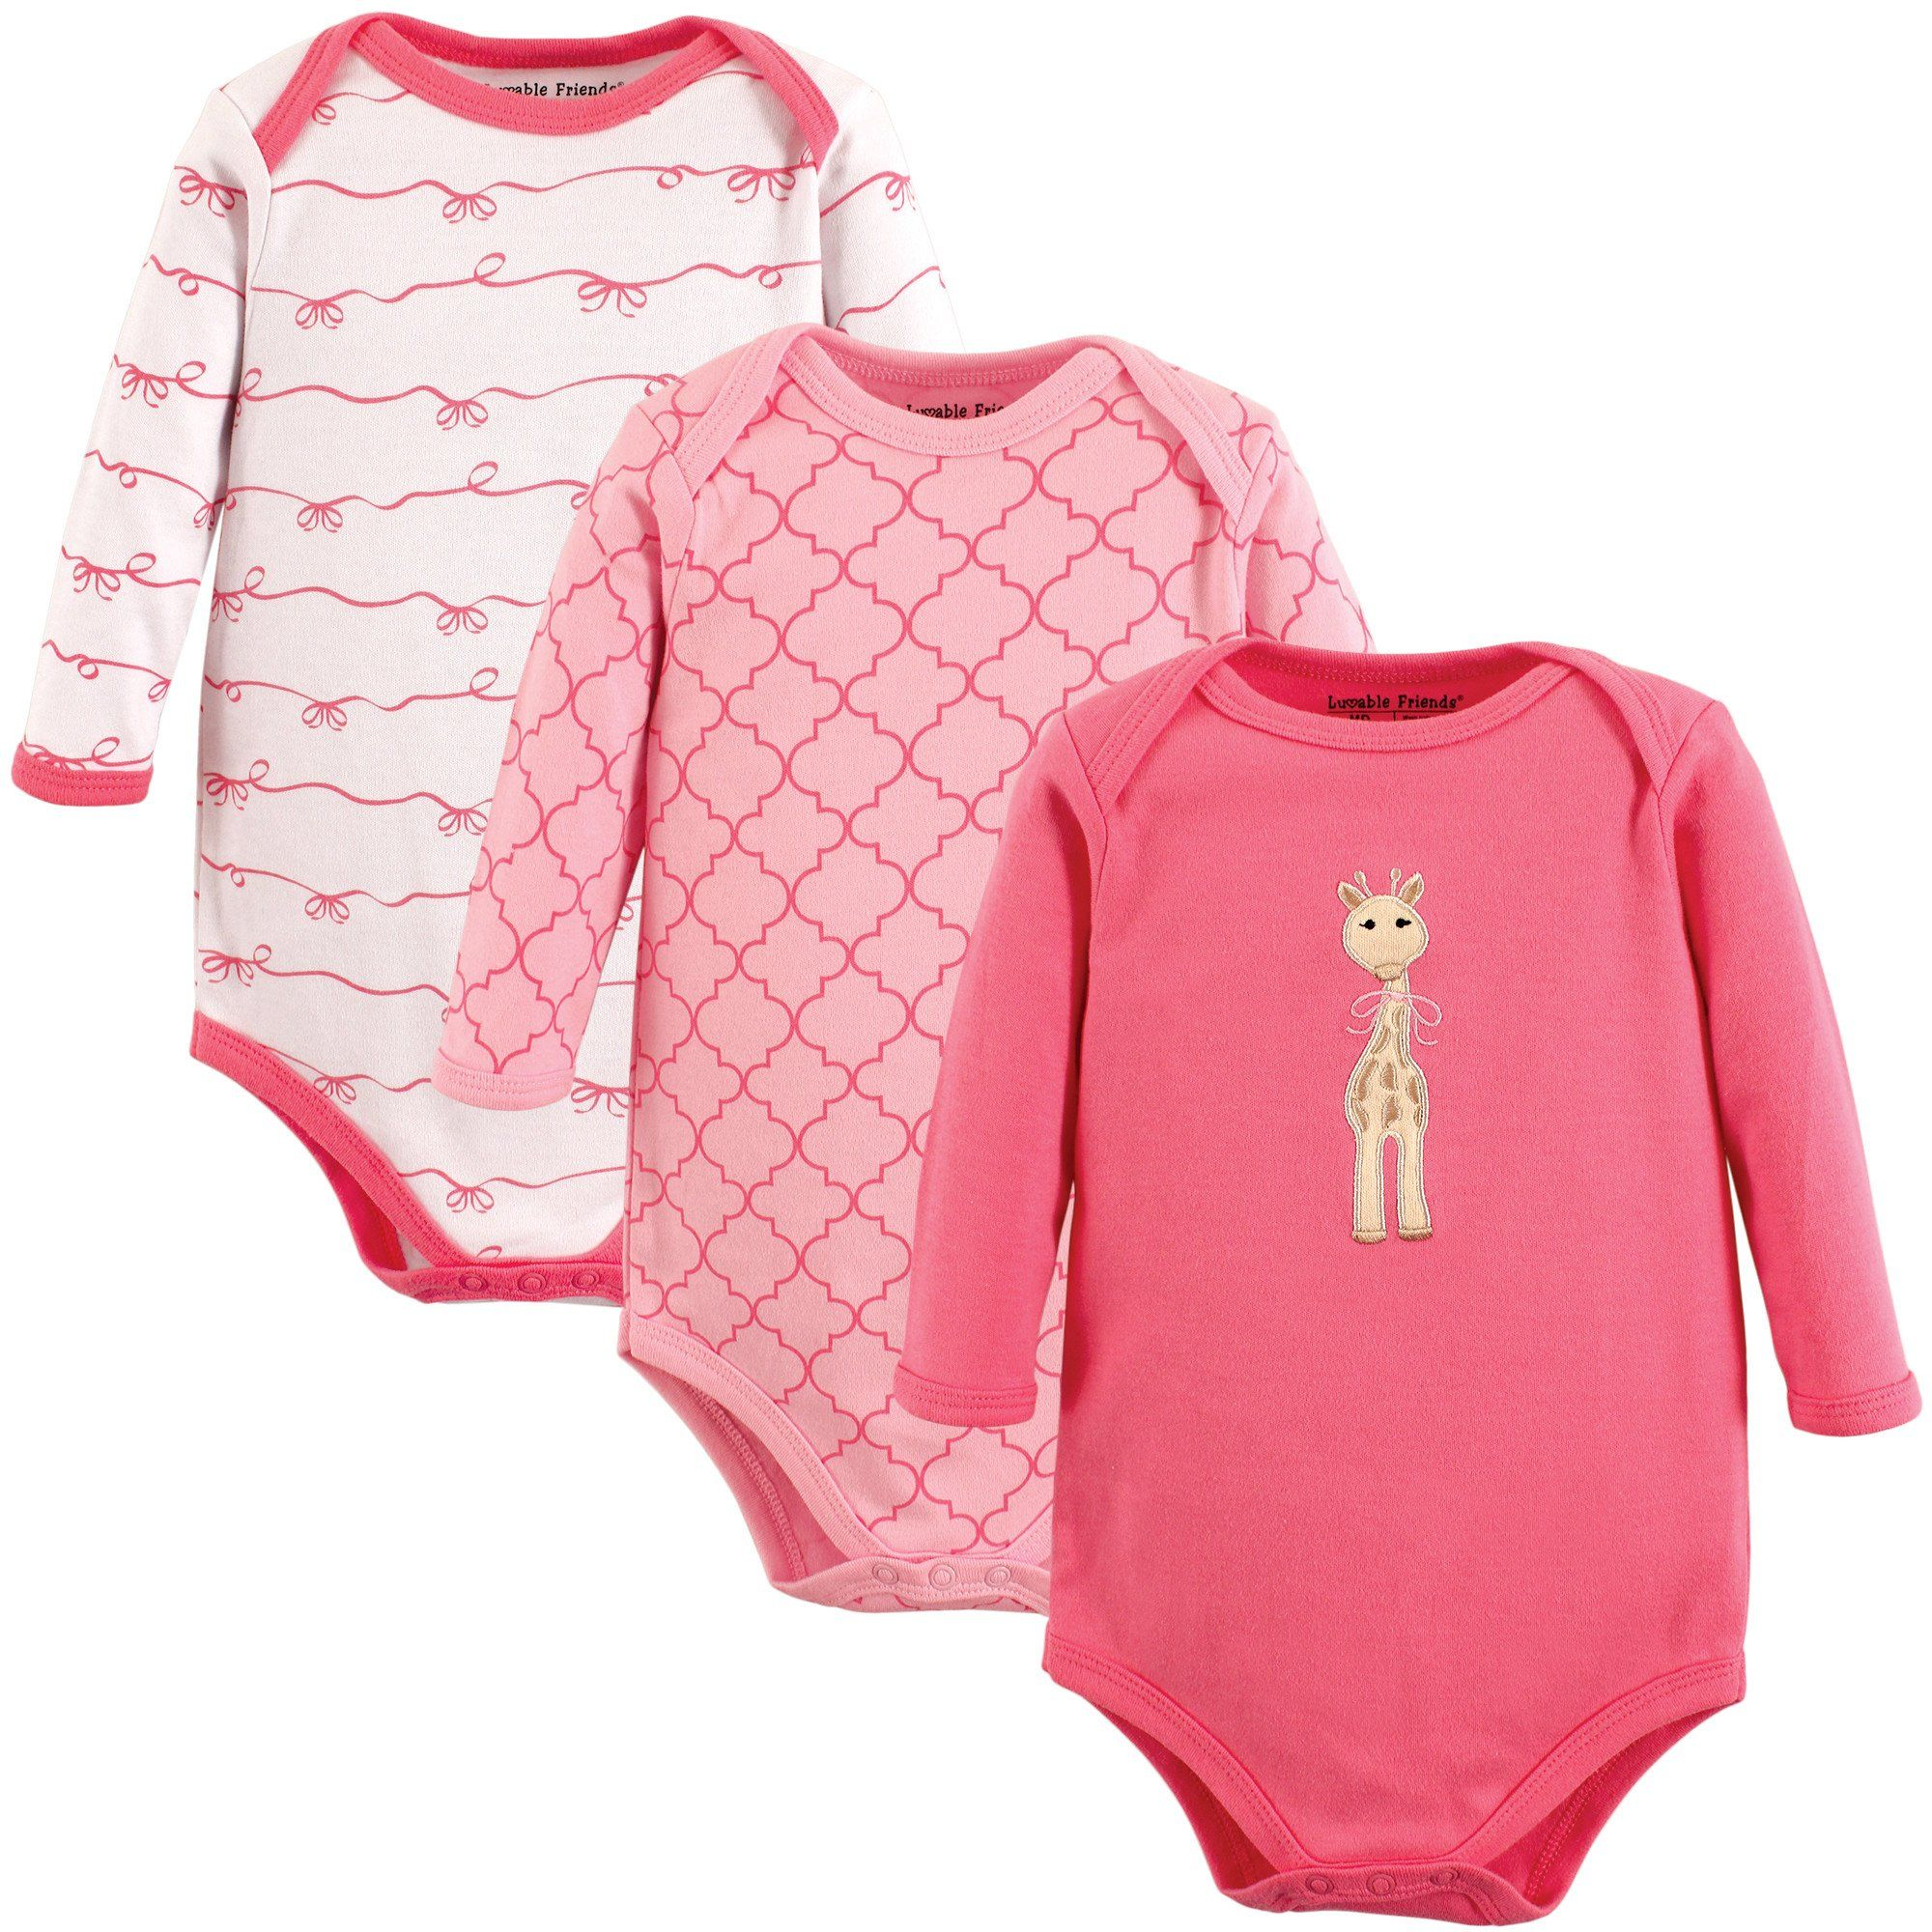 4dd0cd3ae0 Luvable Friends Baby Long Sleeve Bodysuit 3 Pack